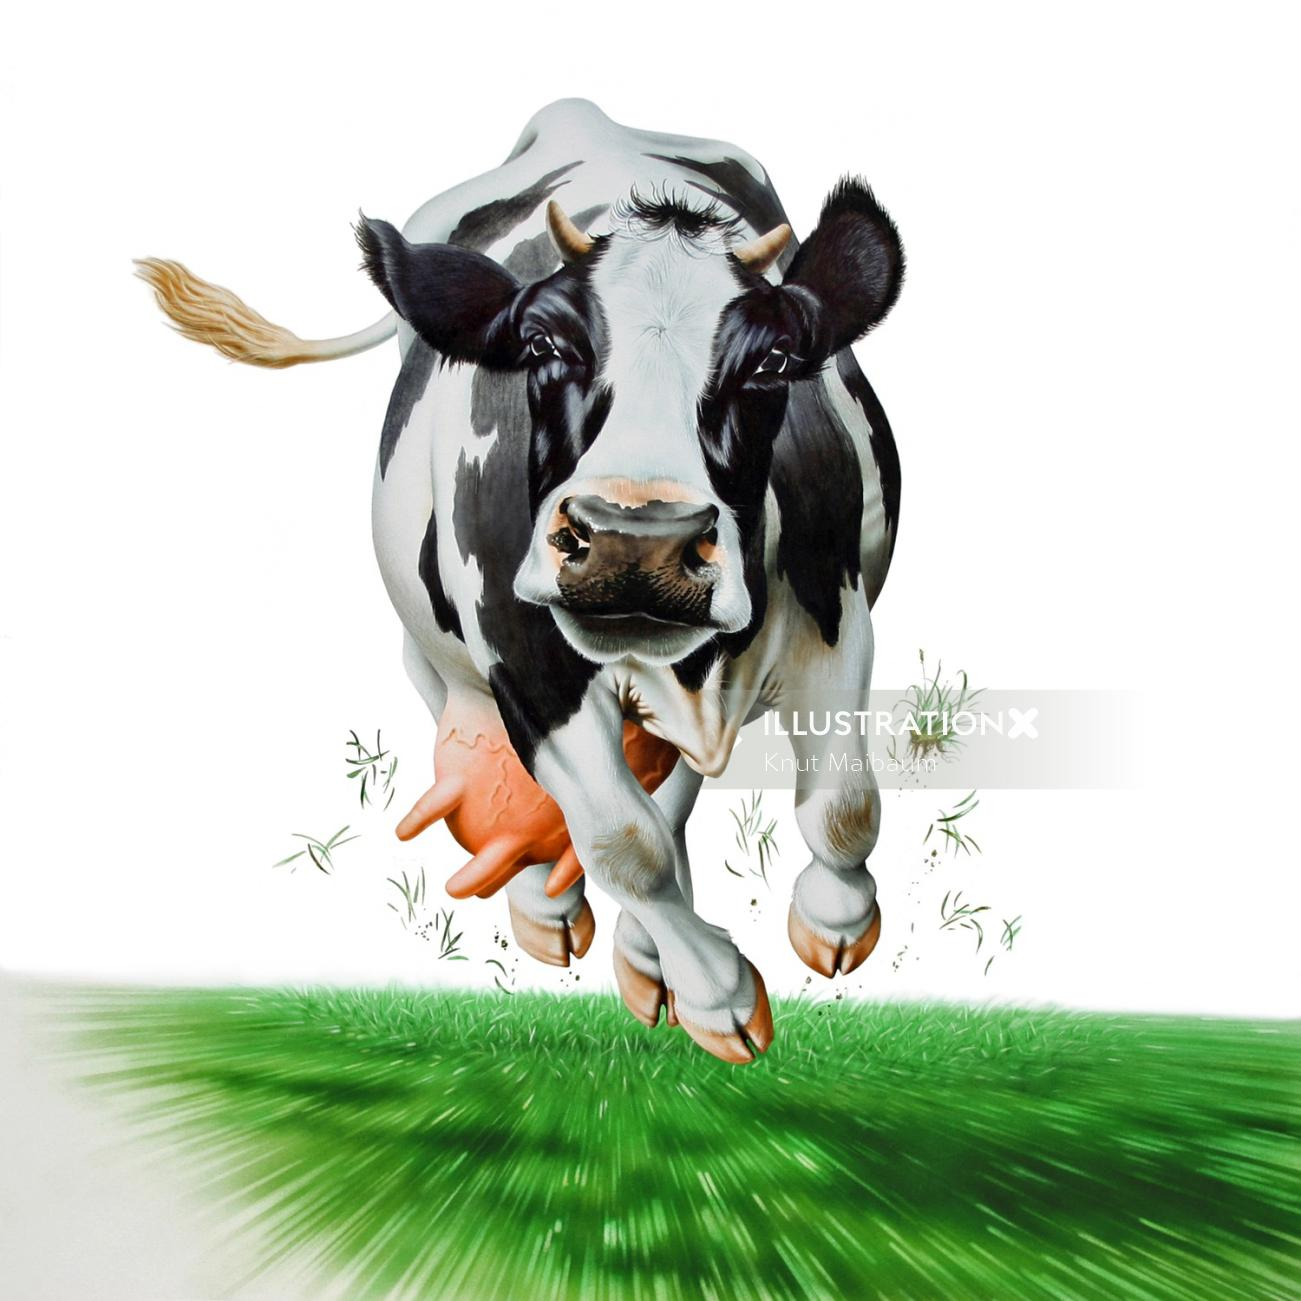 Cow running on high speed